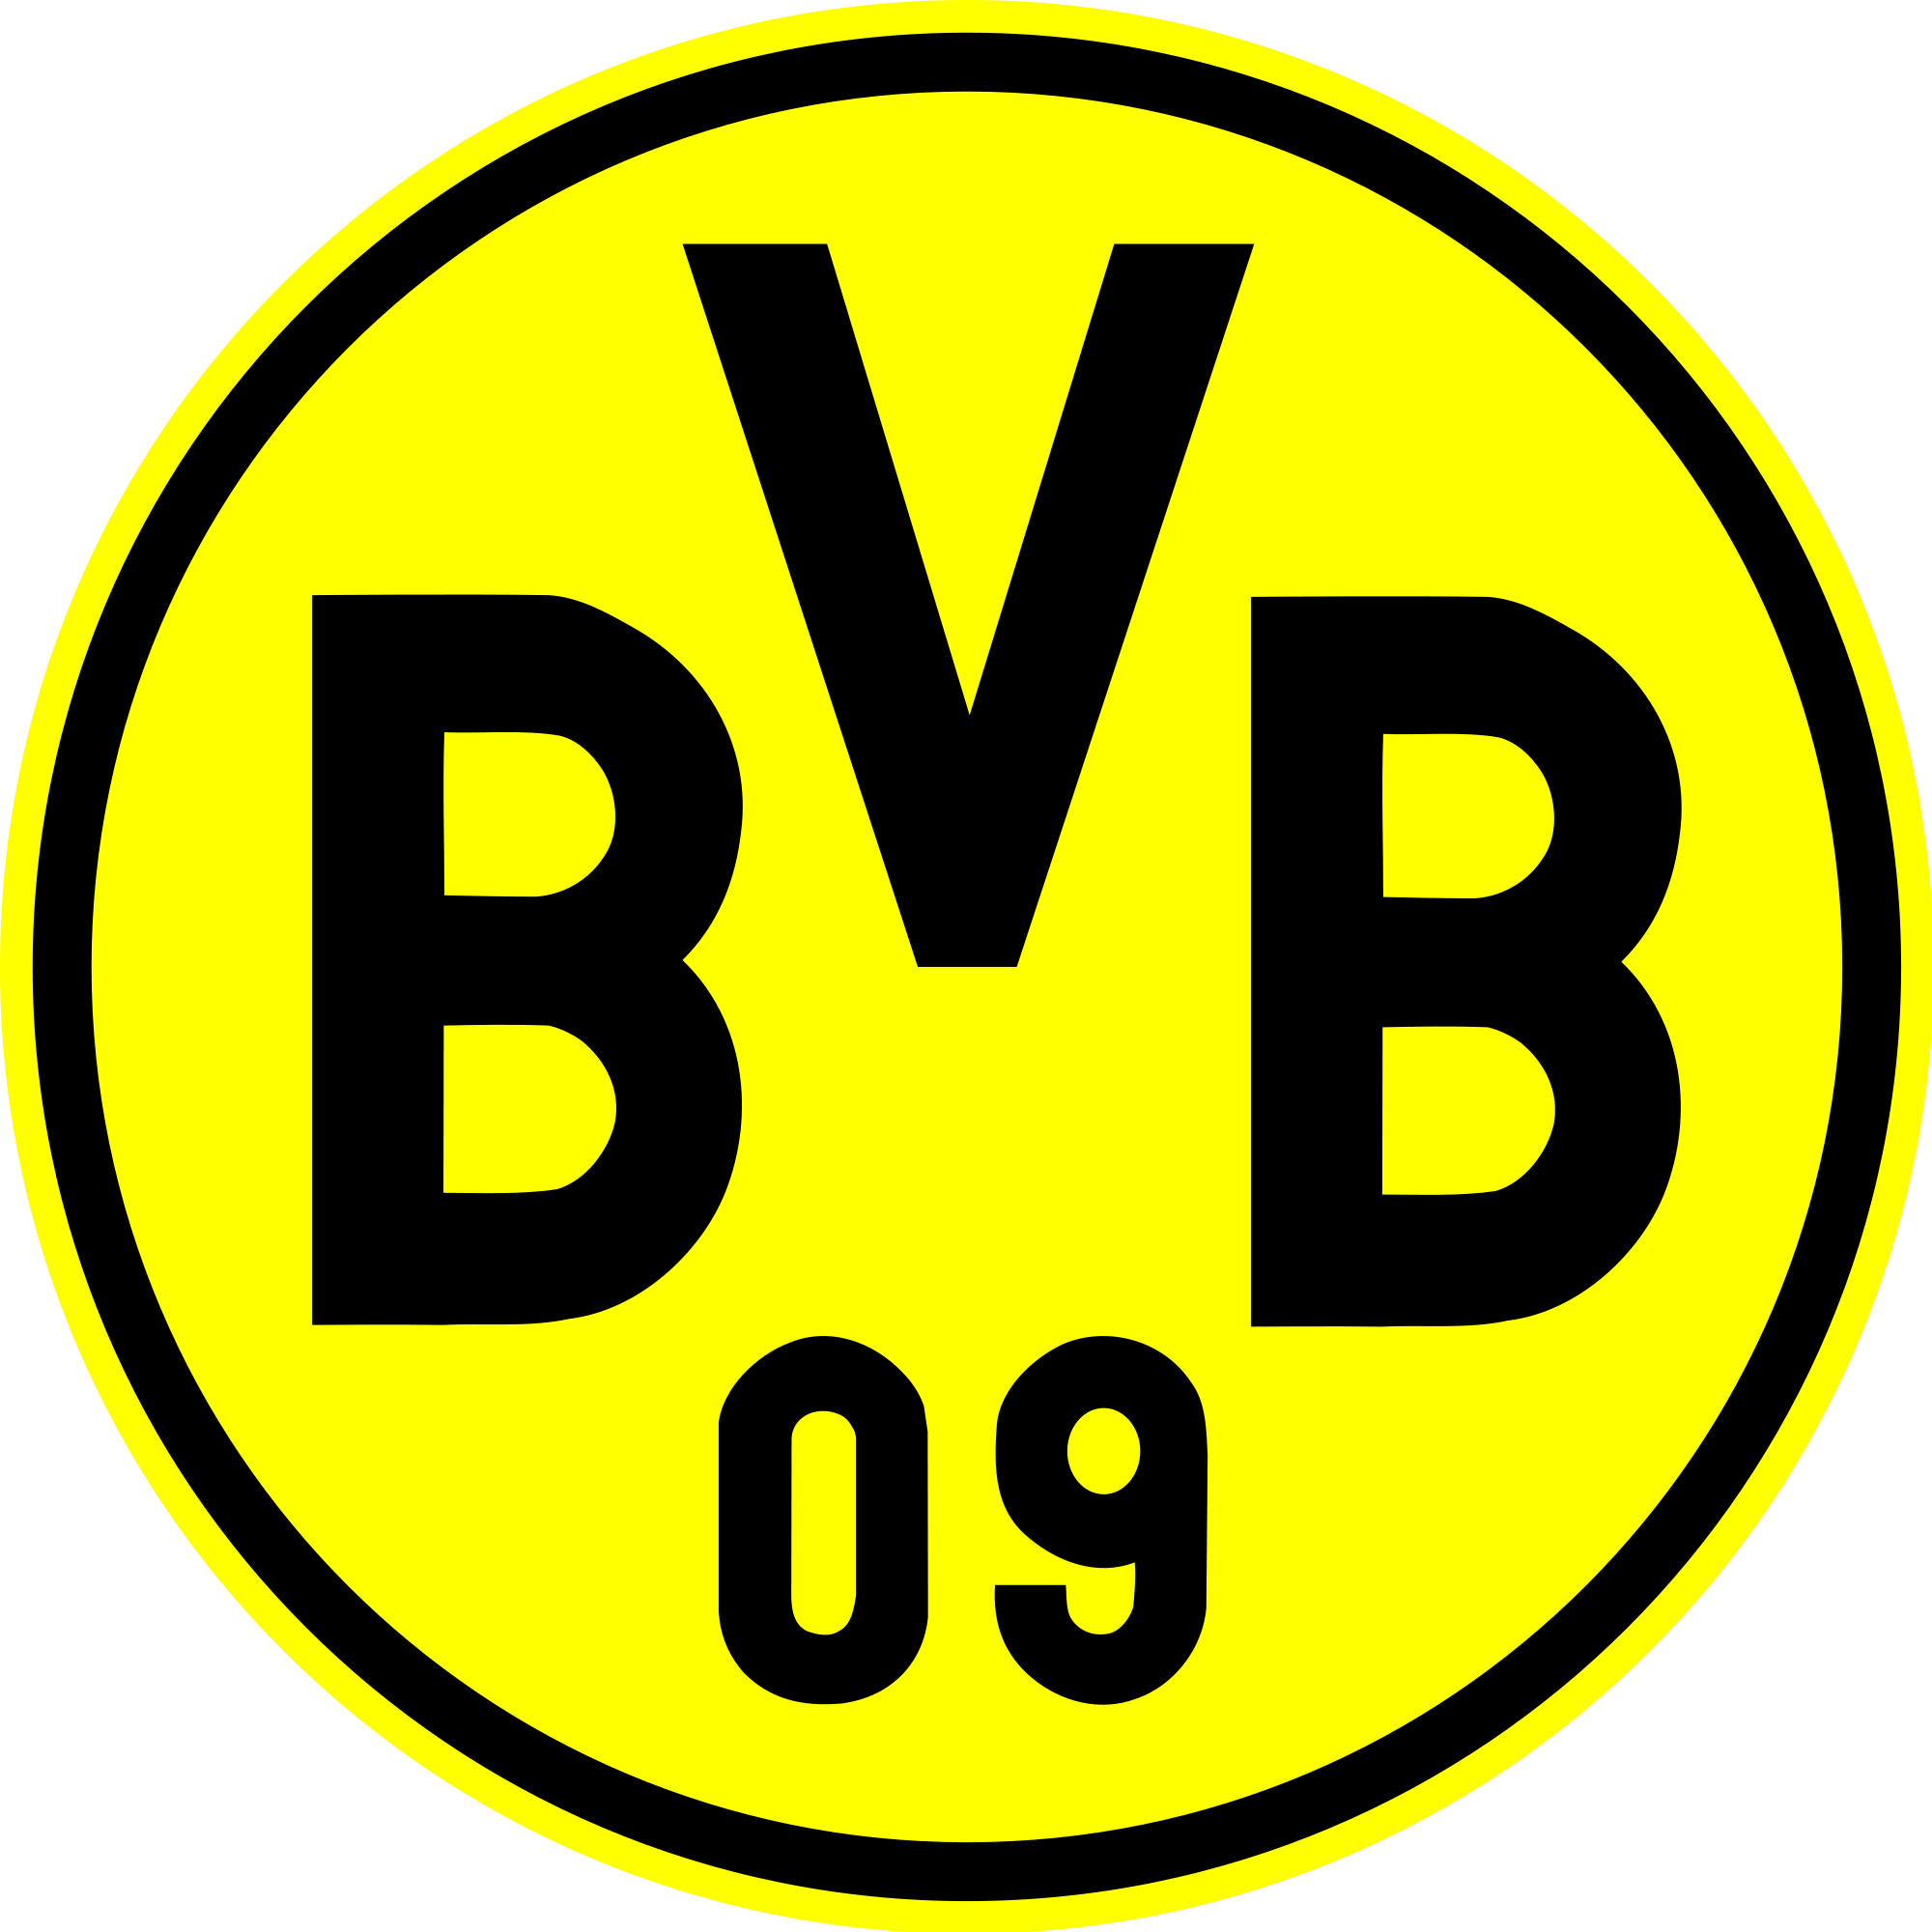 bundesliga german football clubs logos transparent png images stickpng rh stickpng com german soccer club logos german soccer logos and names